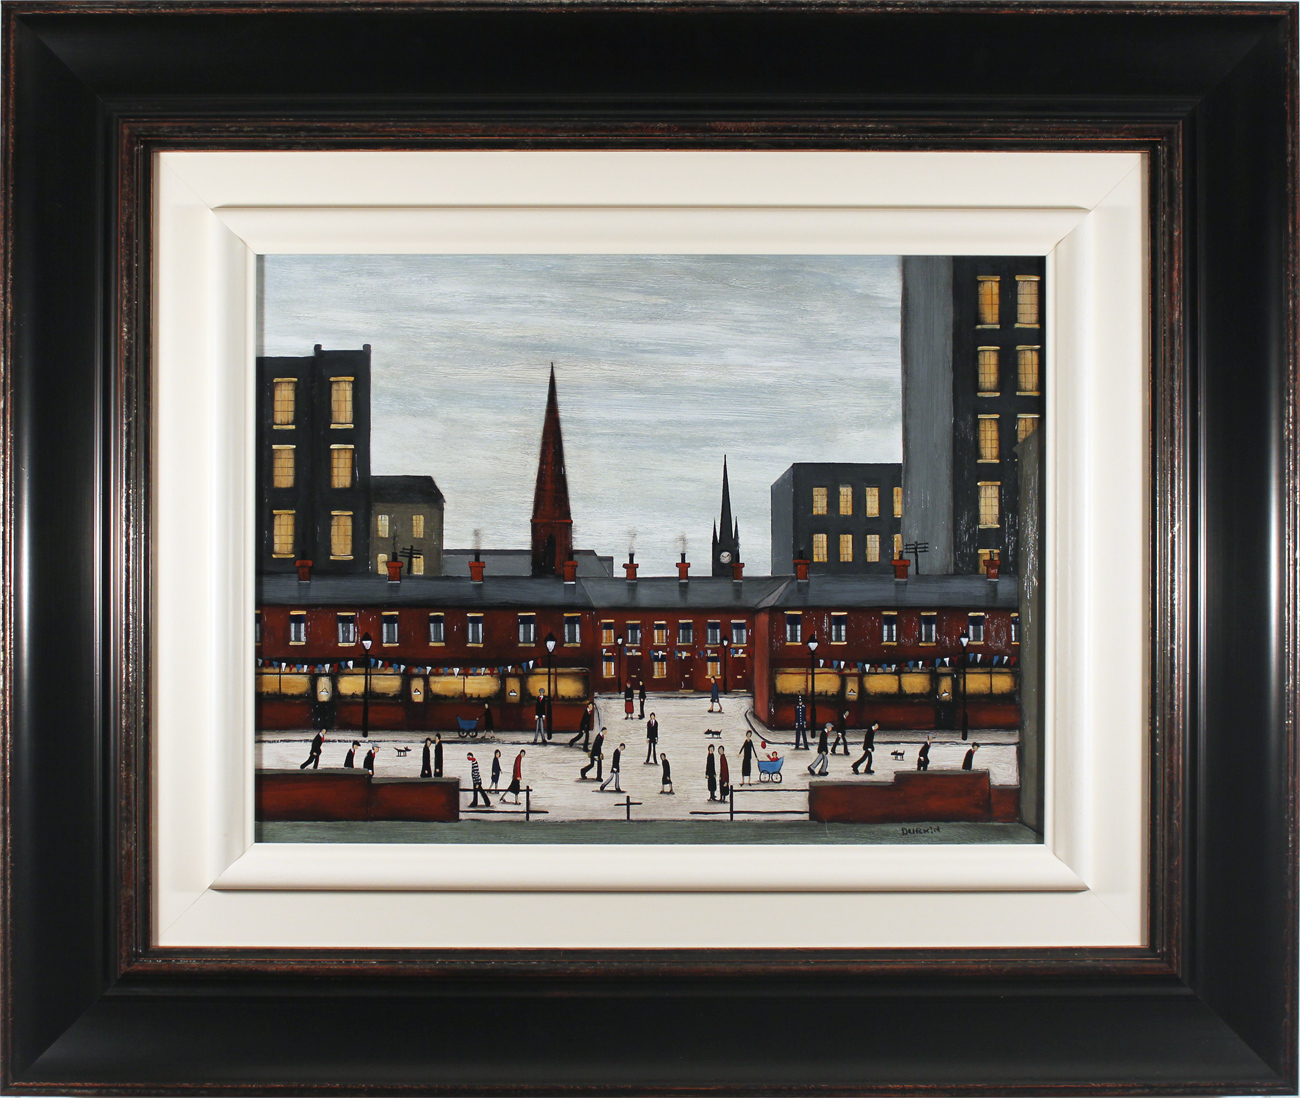 Sean Durkin, Original oil painting on panel, The Town Centre Click to enlarge